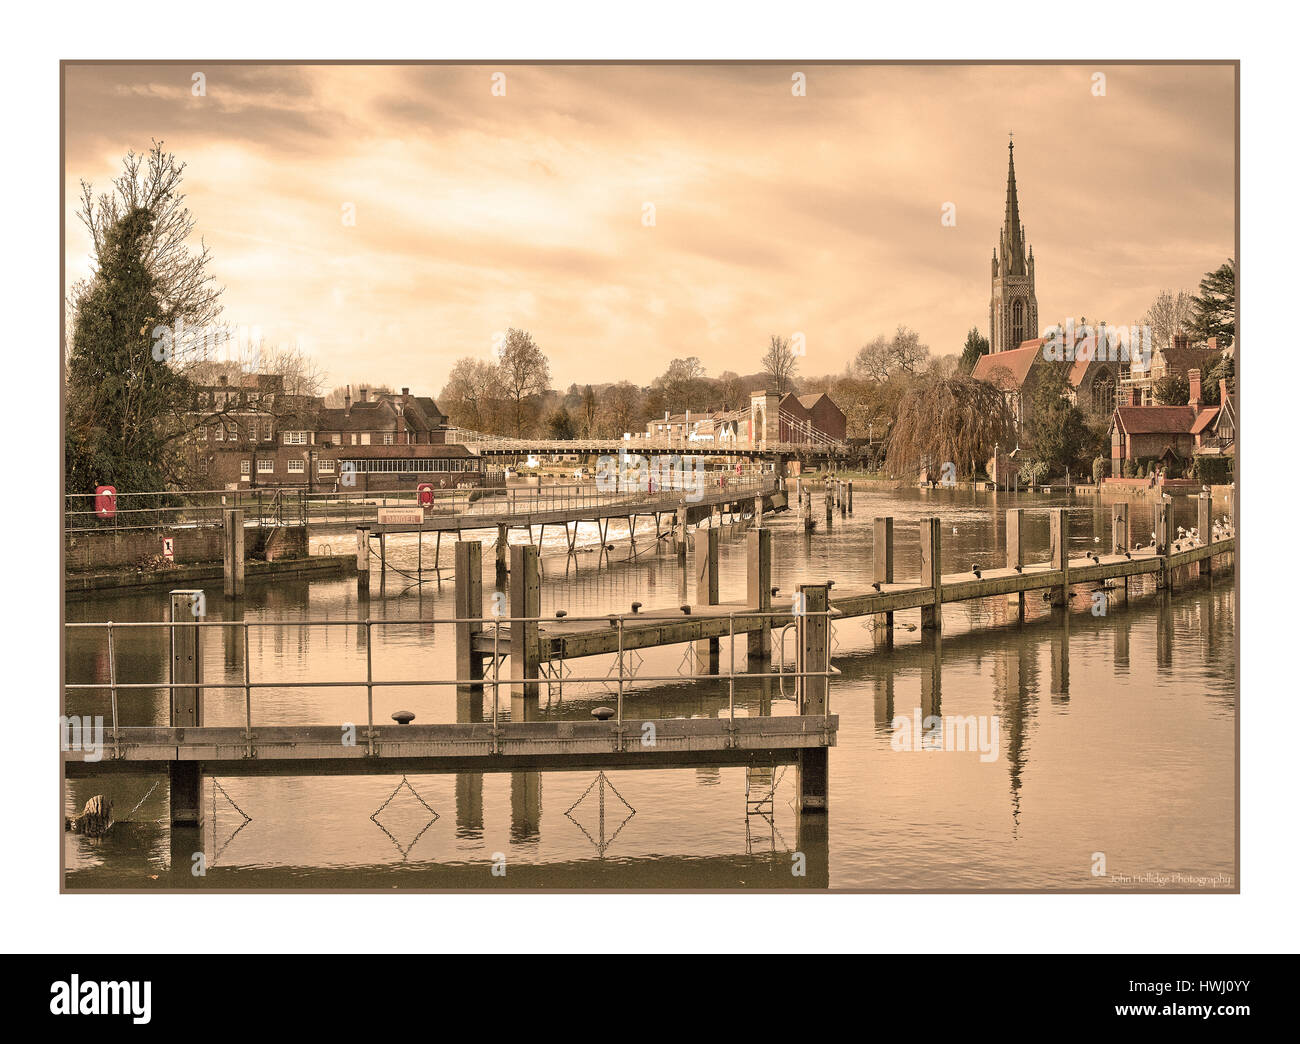 Sepia photo of Bridge at Marlow UK showing church and weir - Stock Image